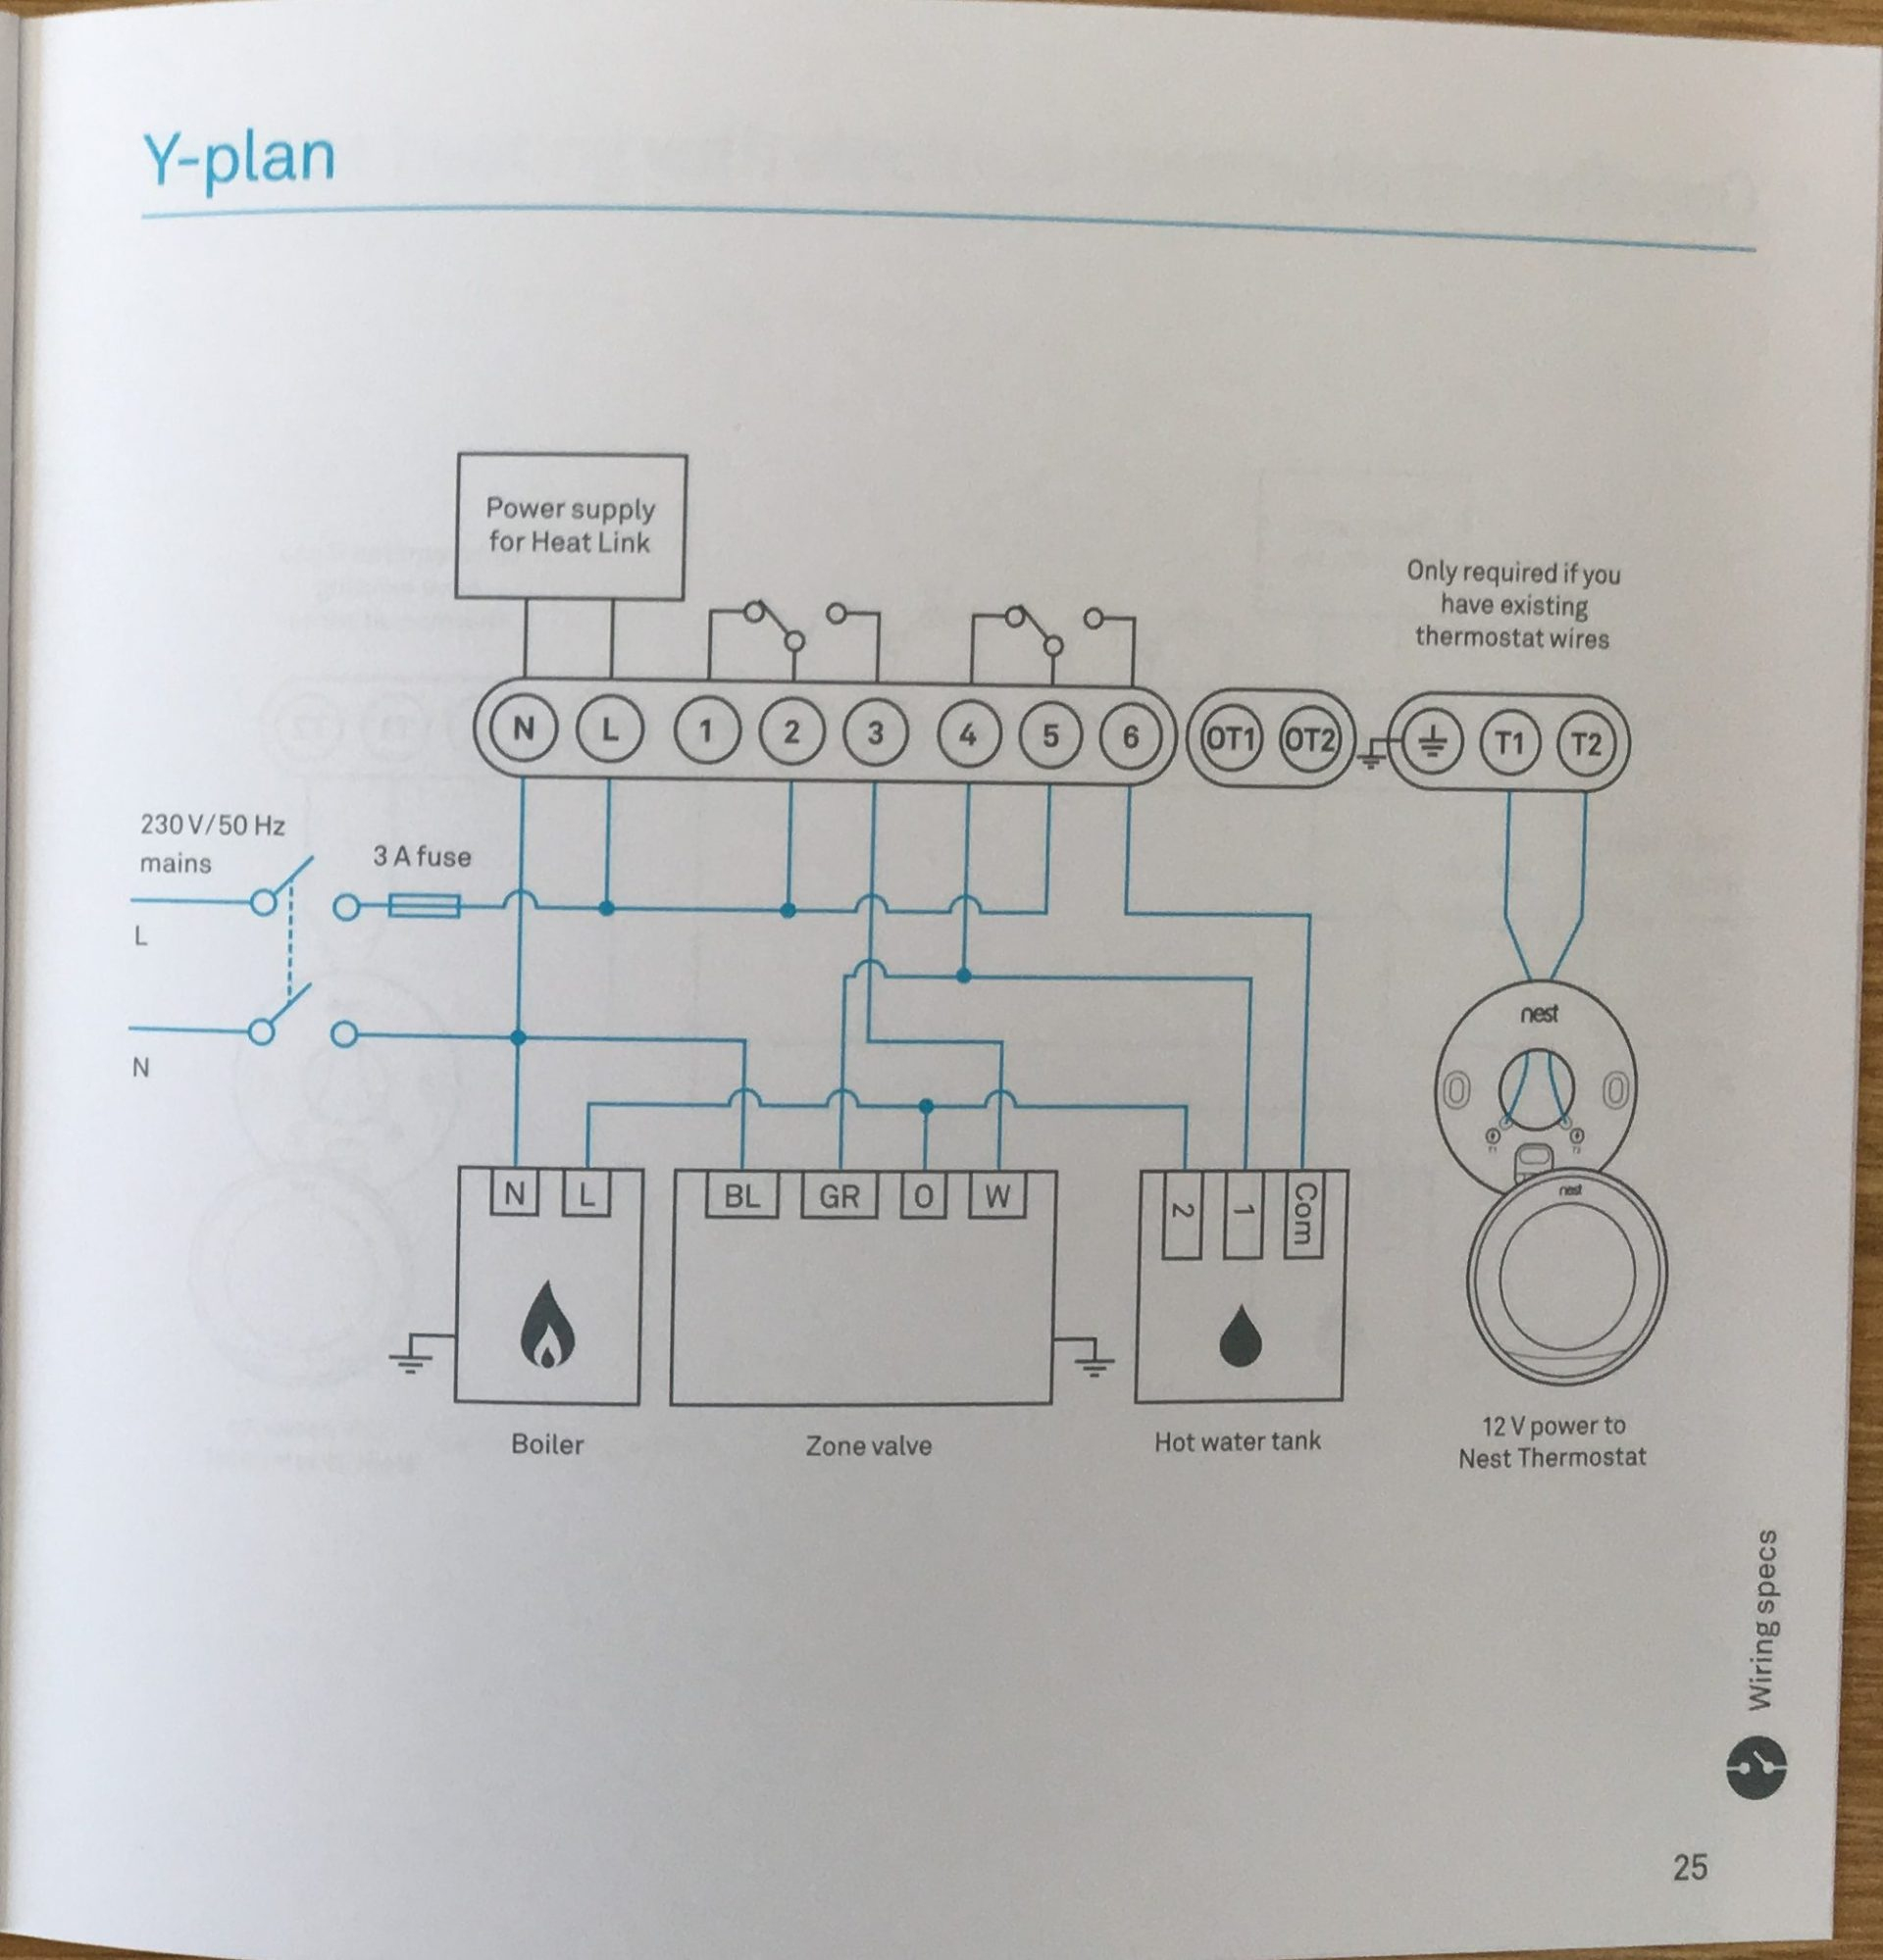 How To Install The Nest Learning Thermostat (3Rd Gen) In A Y-Plan - Nest Wiring Diagram For Y Plan